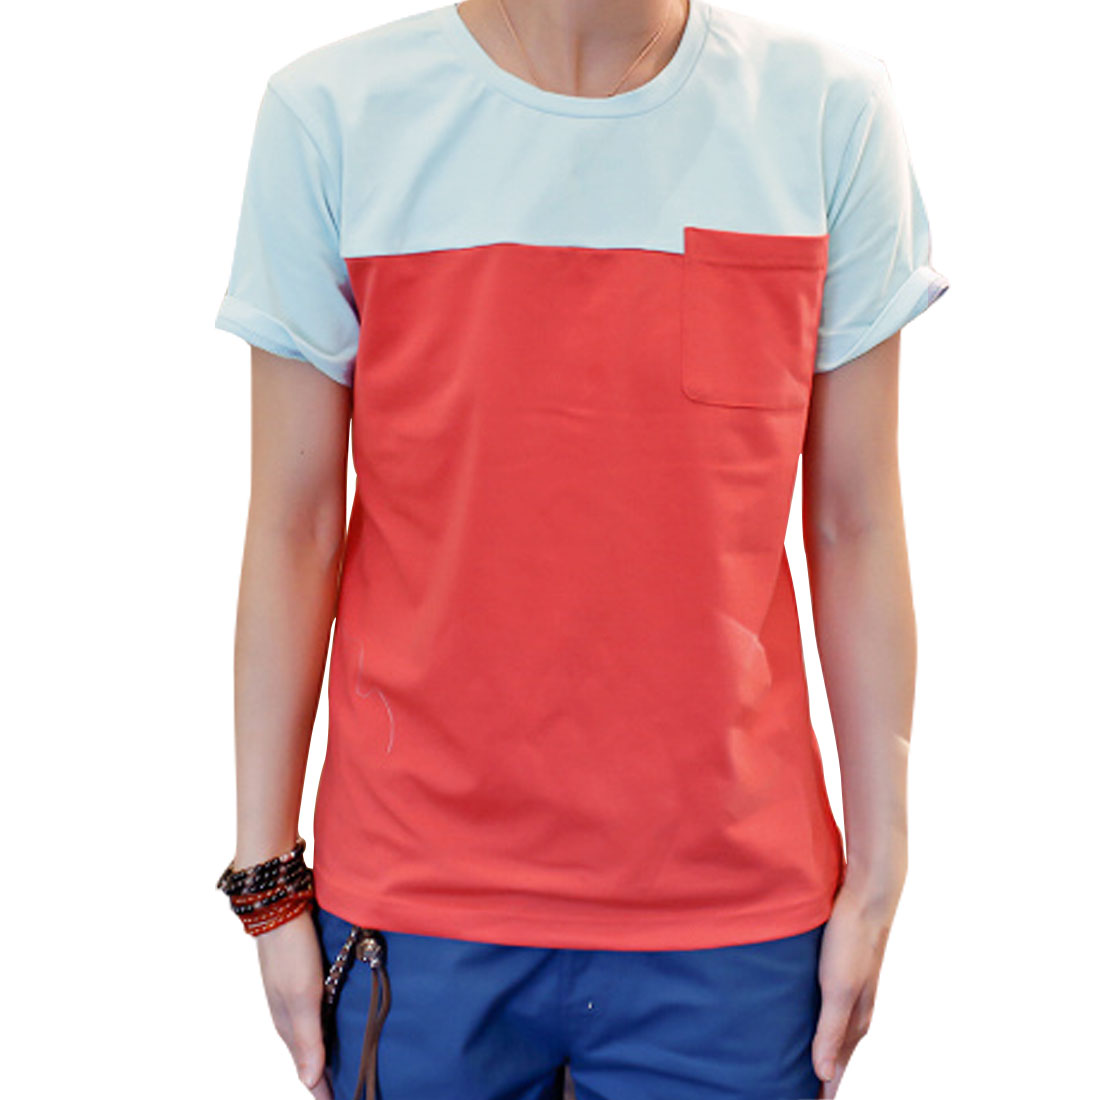 Men Round Neck Pullover Short Sleeve Color Blocking Chest Pocket Shirt Pale Blue Watermelon Red M